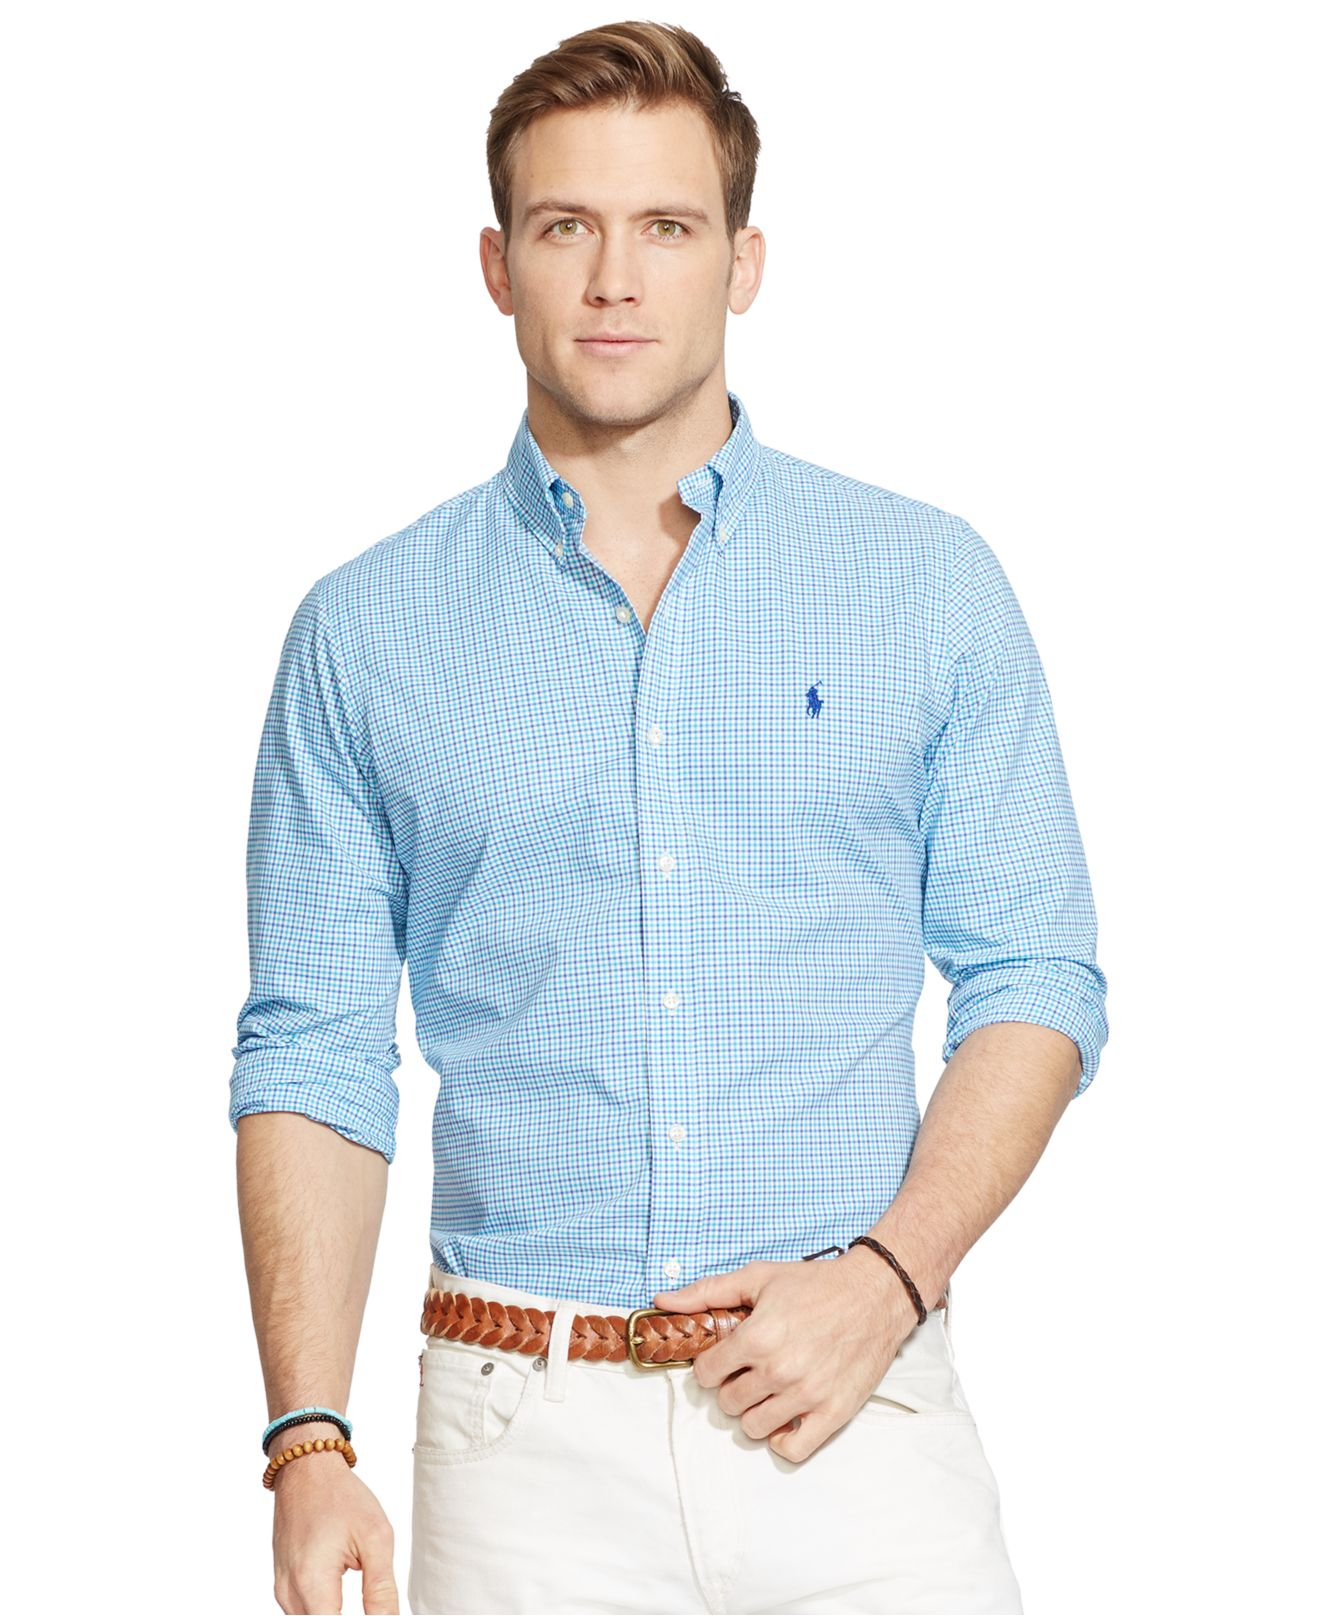 09e4df64183 reduced lyst polo ralph lauren checked poplin shirt in blue for men f21b9  27ae6